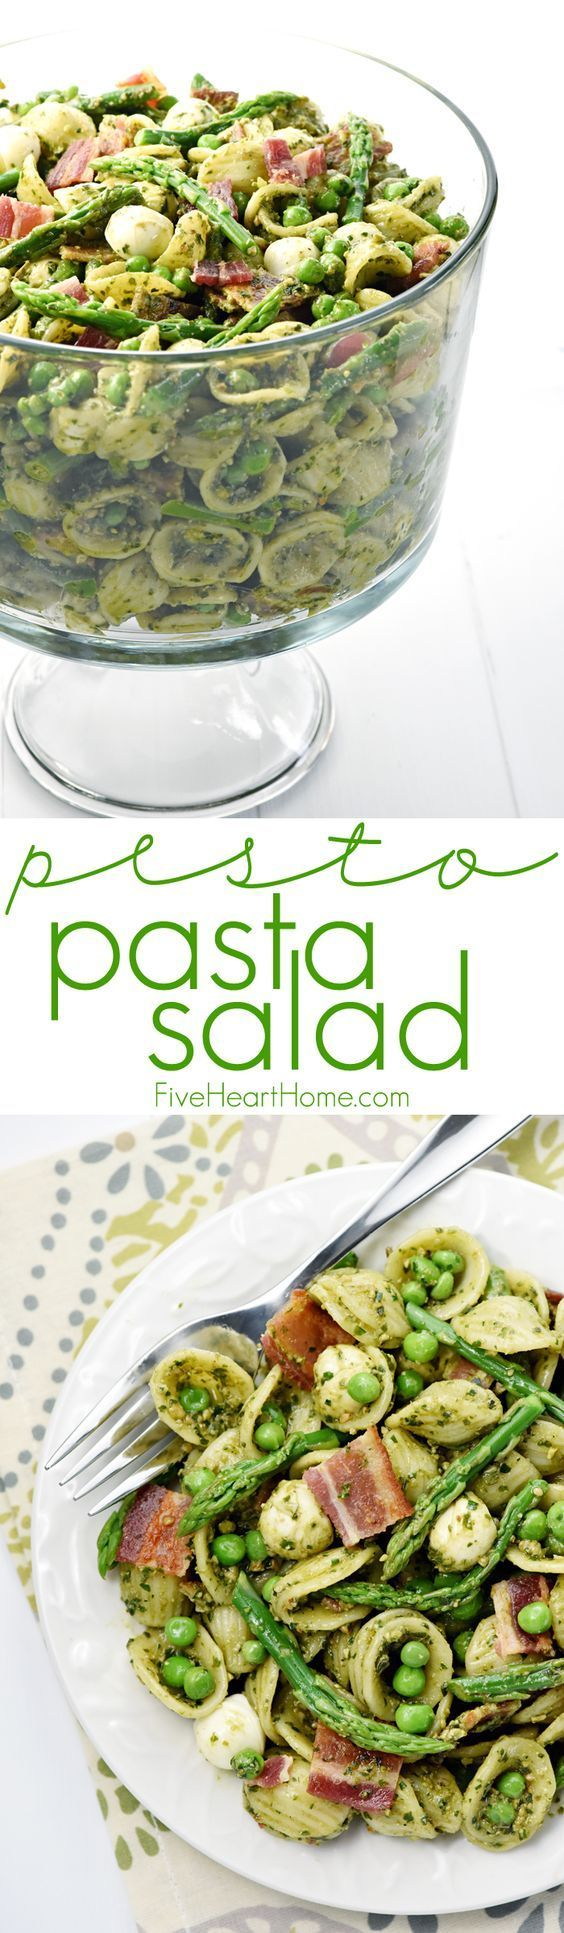 Pesto Pasta Salad ~ studded with bright green asparagus, sweet peas, decadent bacon, and fresh pearls of mozzarella, this pasta salad is a flavorful side dish or light dinner, perfect for spring and summer celebrations! | http://FiveHeartHome.com